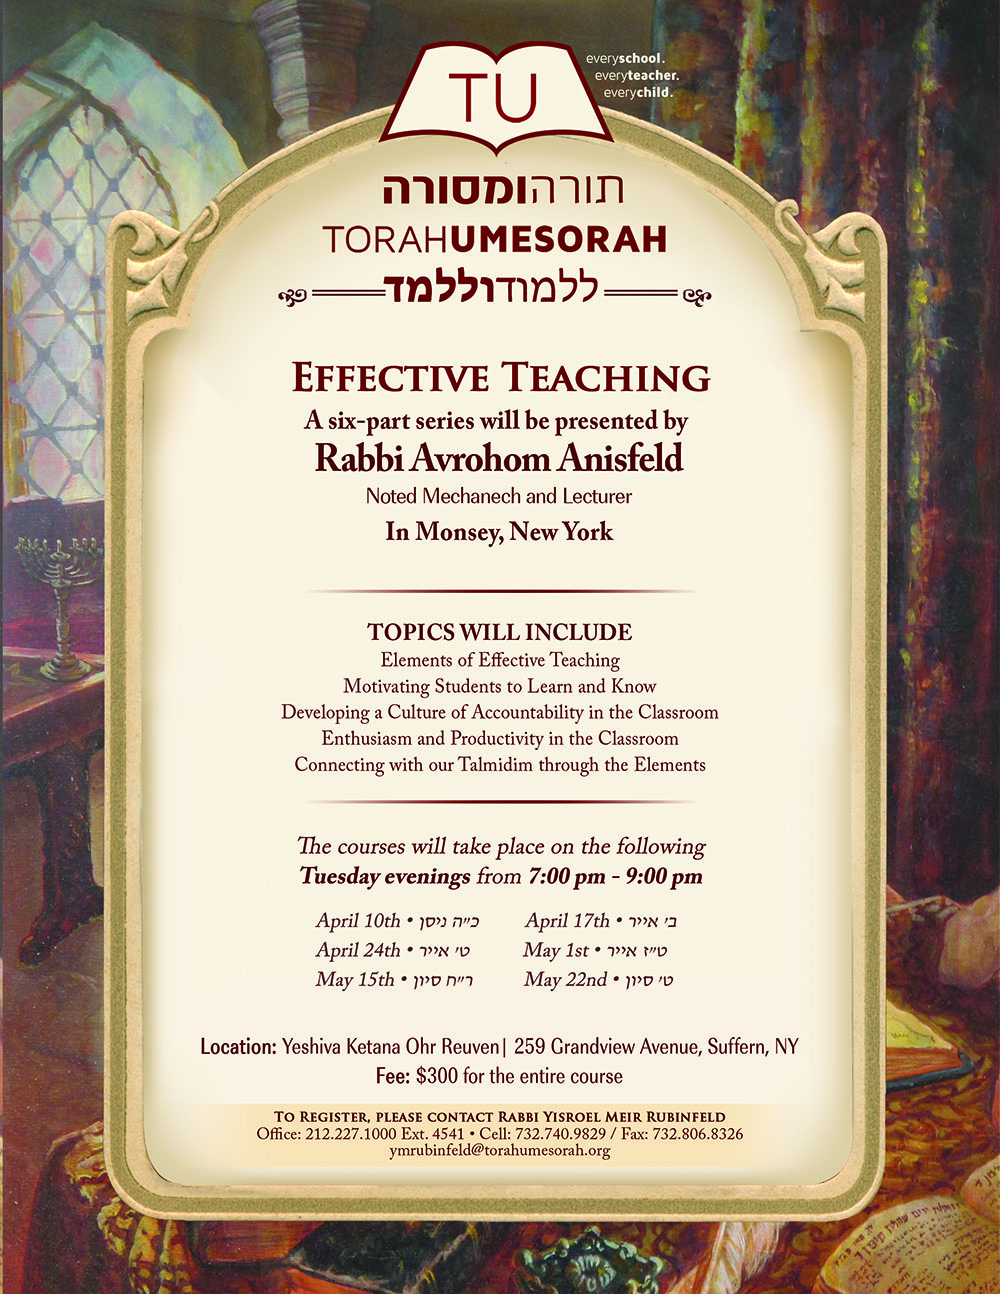 Effective Teaching: A Six-Part Series for Rebbeim in MONSEY